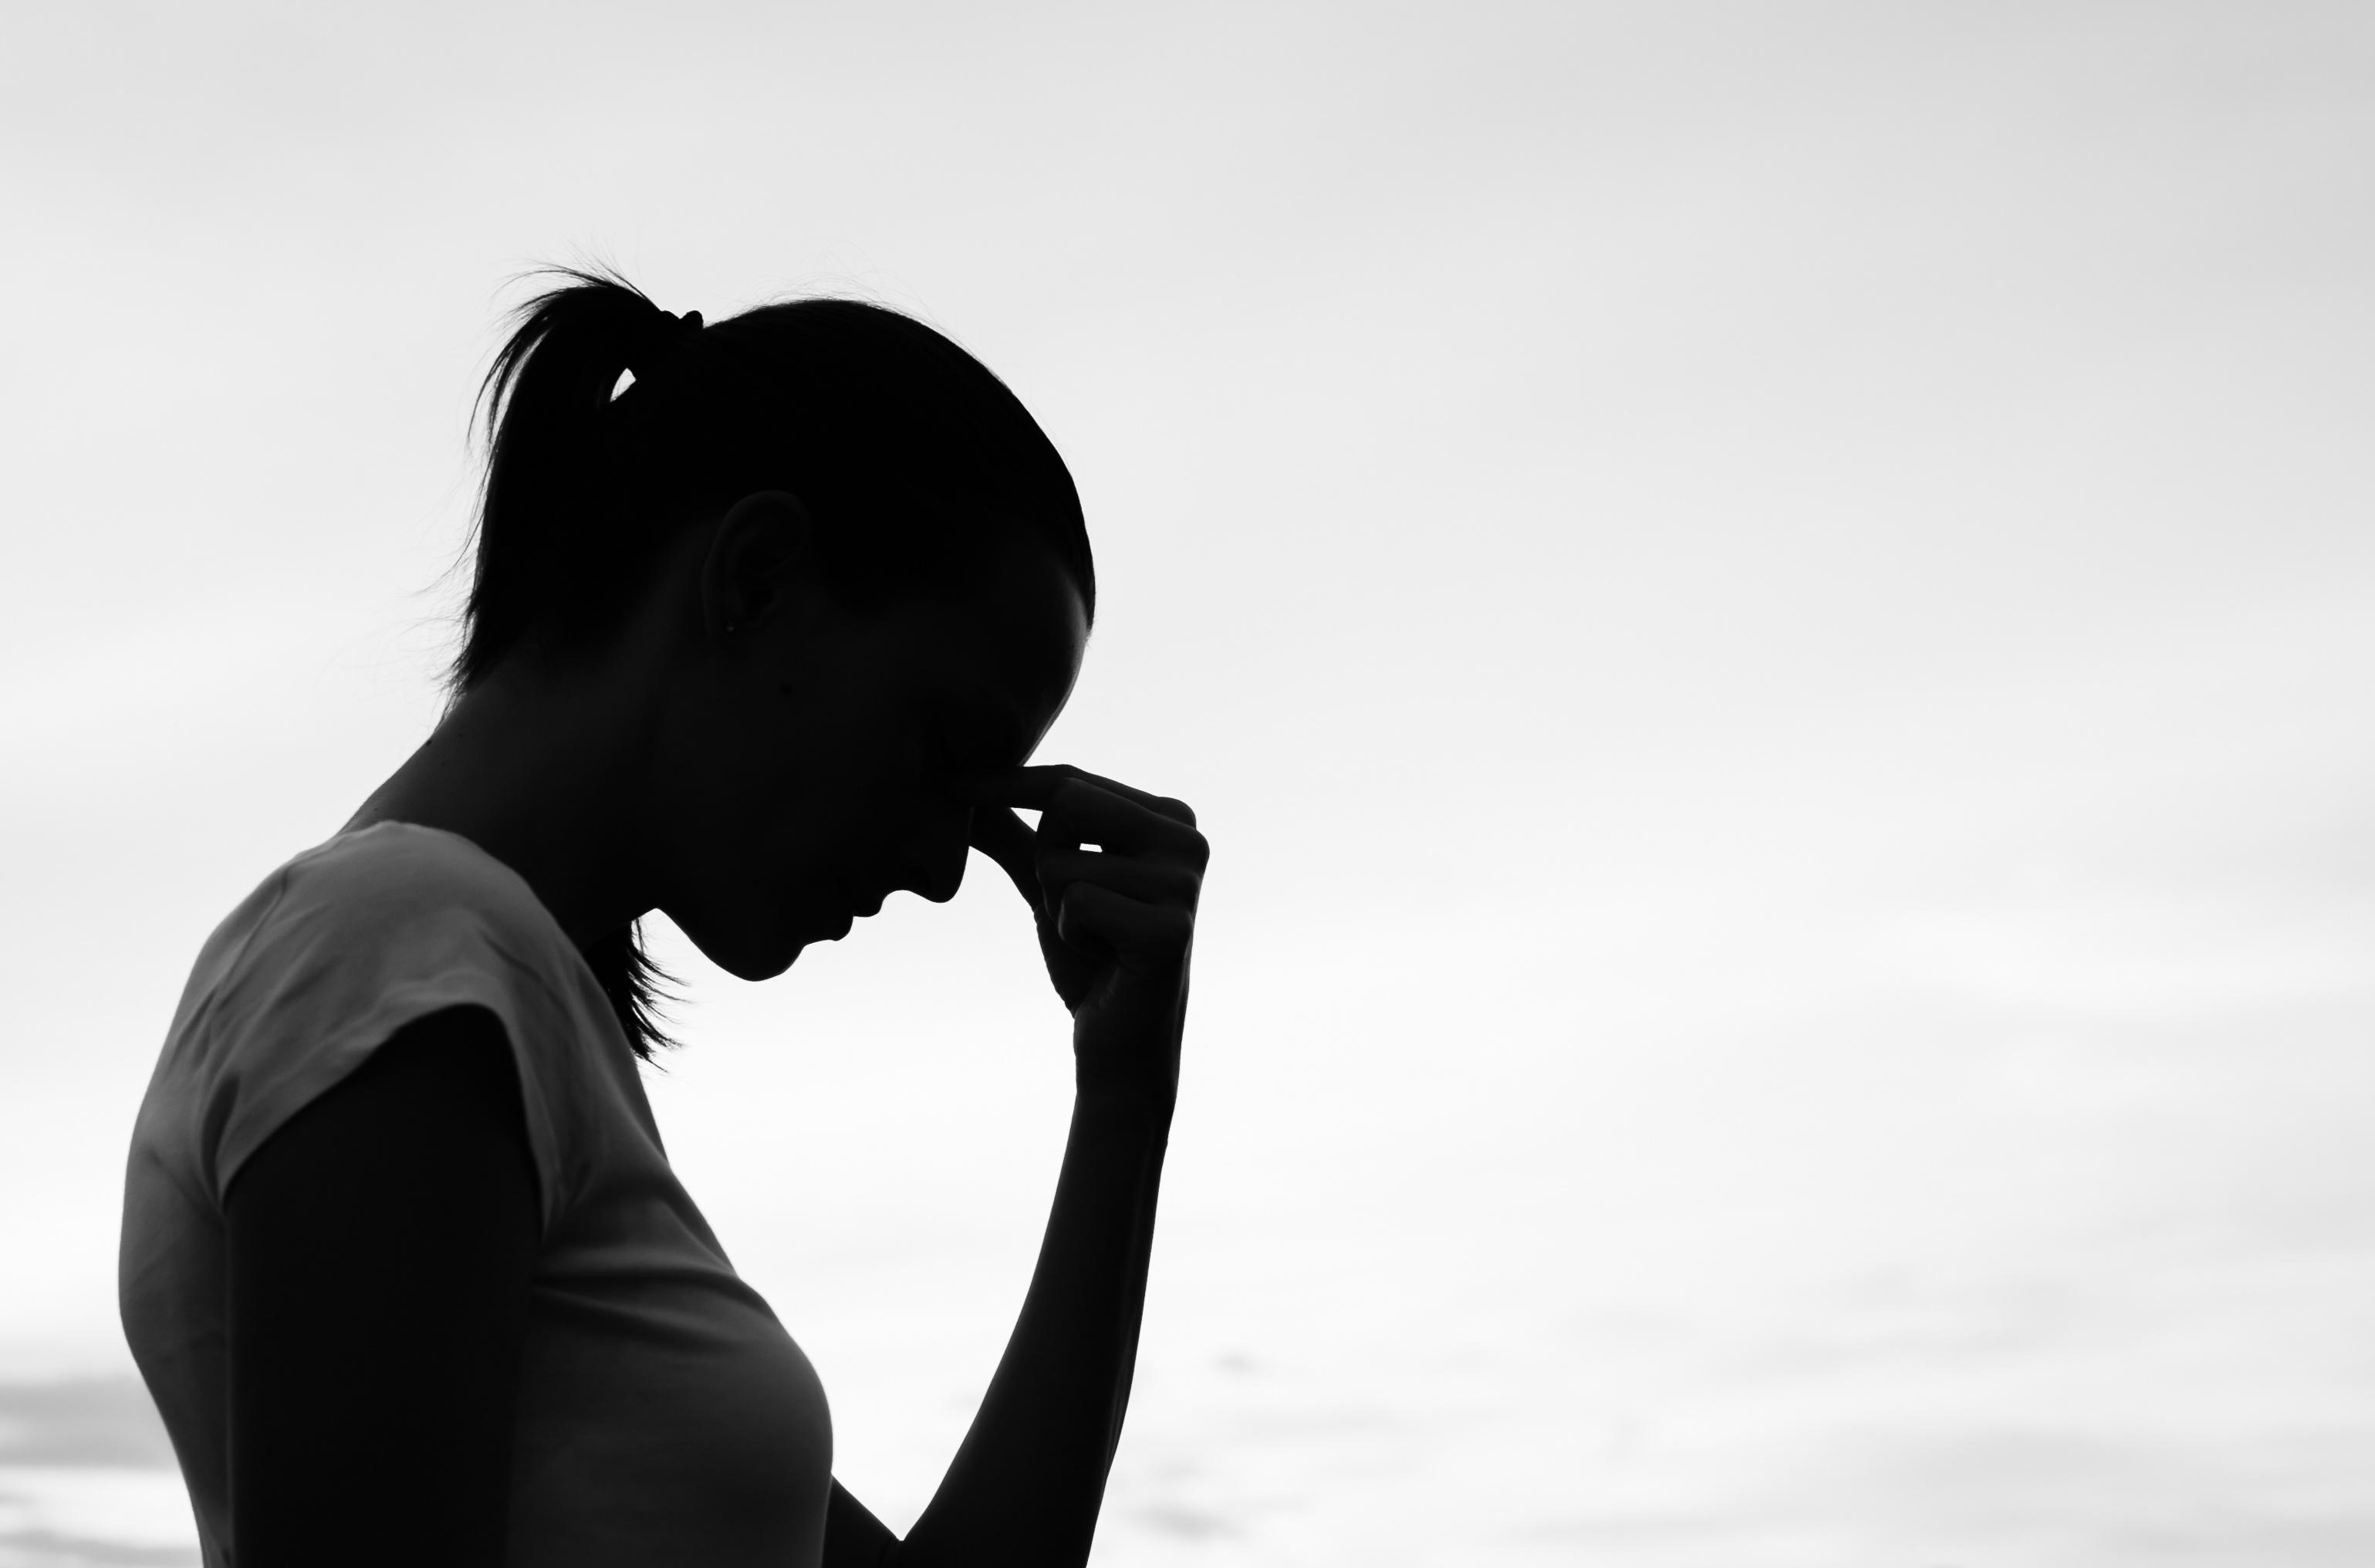 black and white image of woman holding bridge of nose in pain